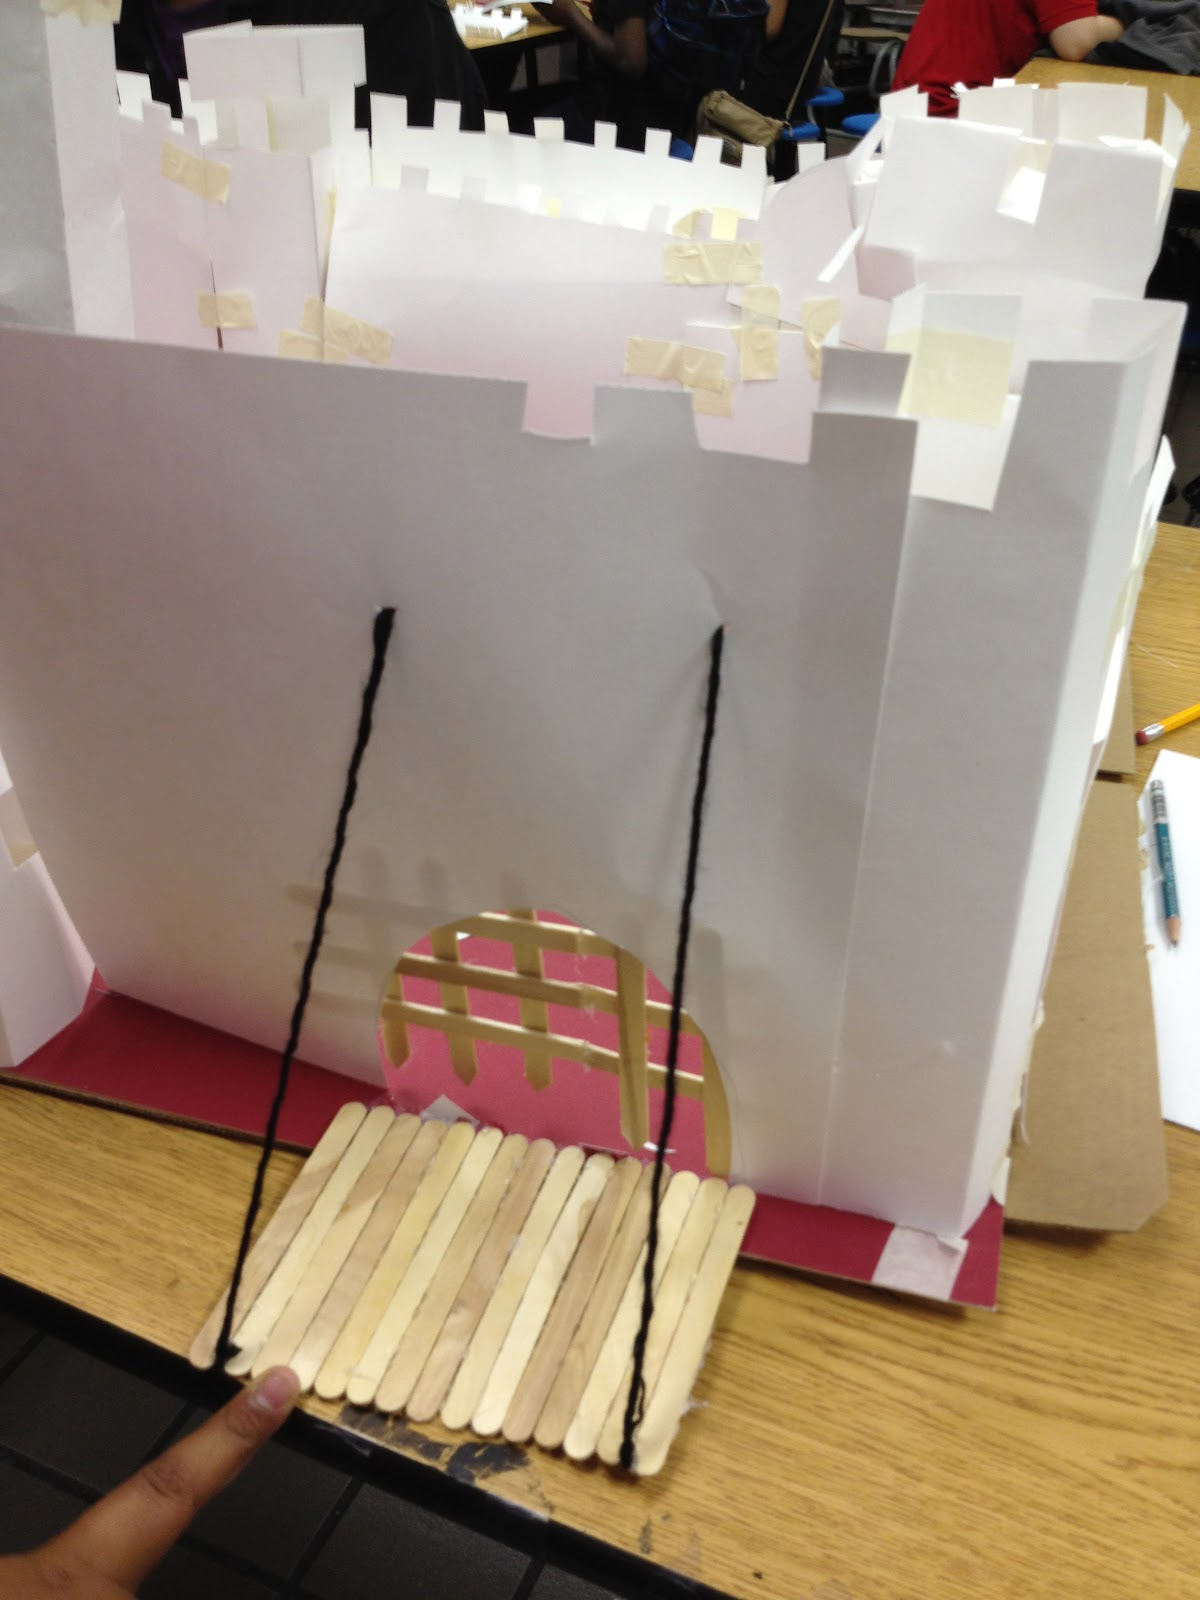 how to make a suspension bridge out of cardboard